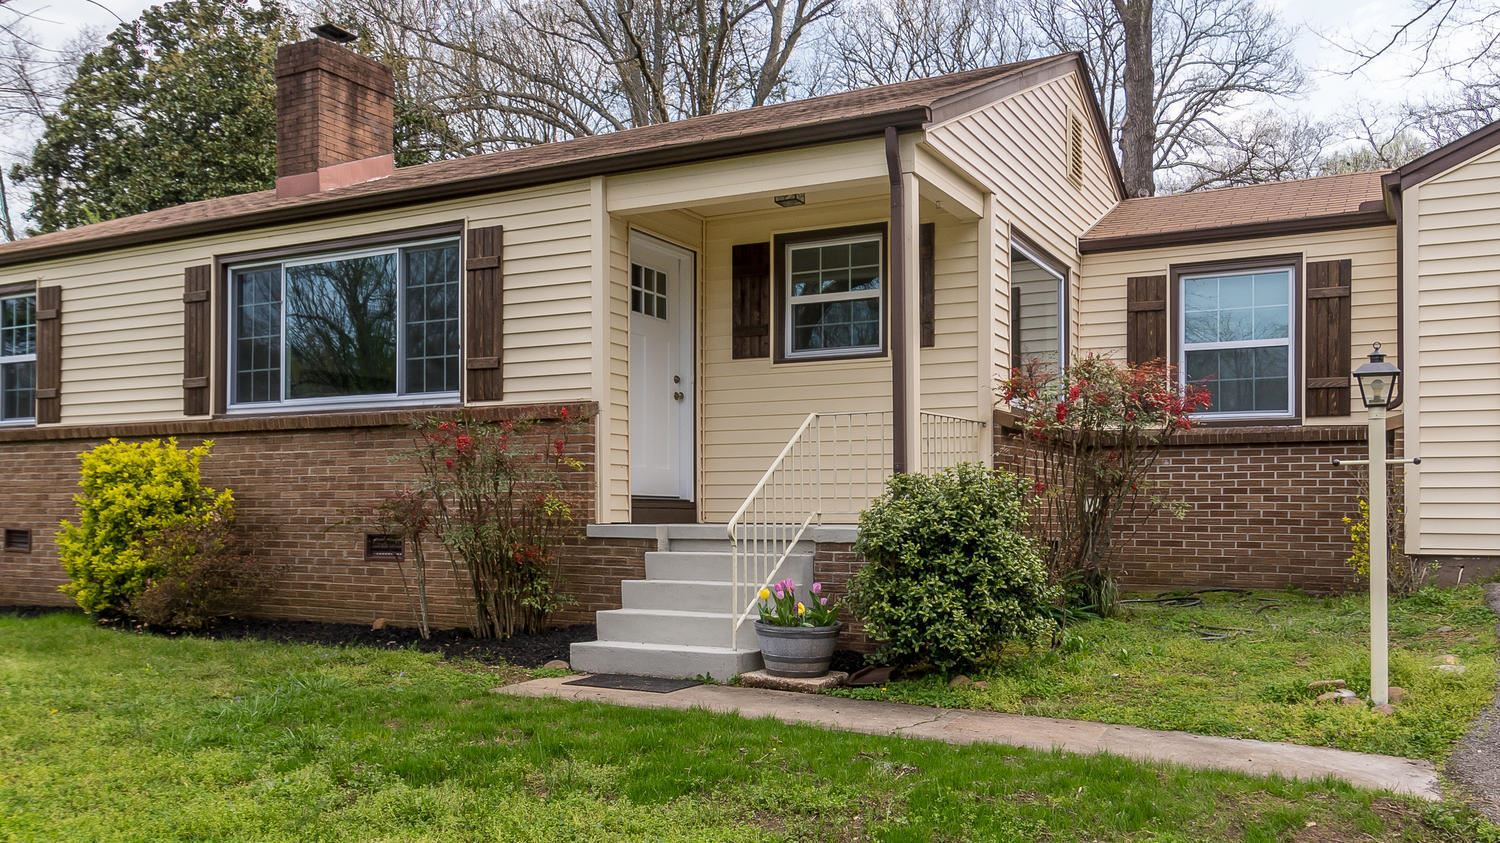 Photo of 402 Maple Loop Rd, Knoxville, TN 37920 (MLS # 1112627)